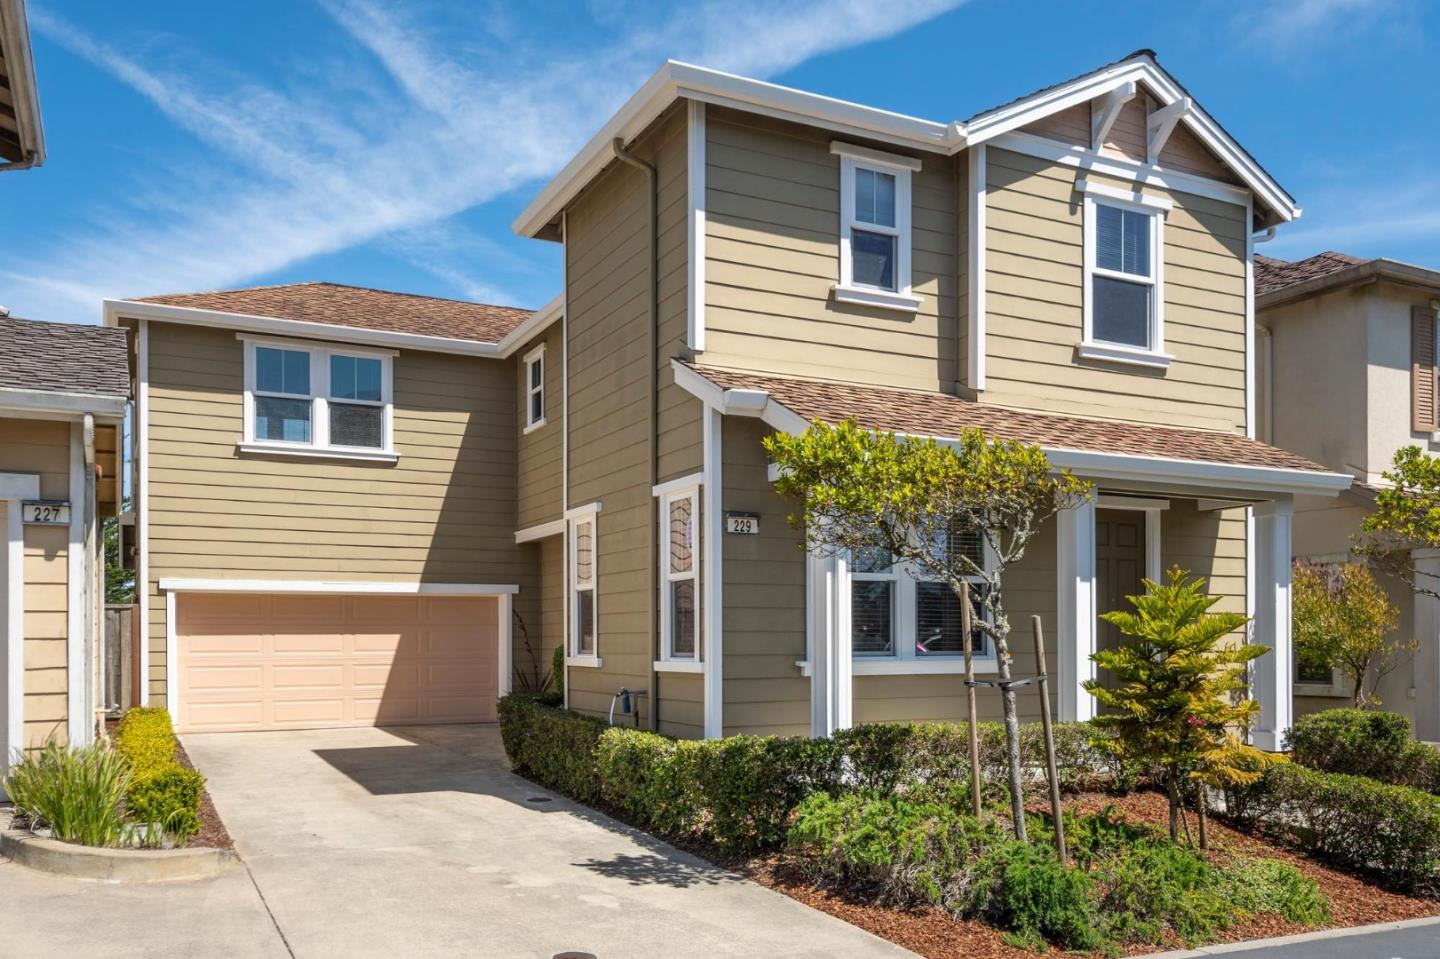 229 Bayberry Circle Pacifica, California 94044, 4 Bedrooms Bedrooms, ,3 BathroomsBathrooms,Residential,For Sale,229 Bayberry Circle,ML81757885